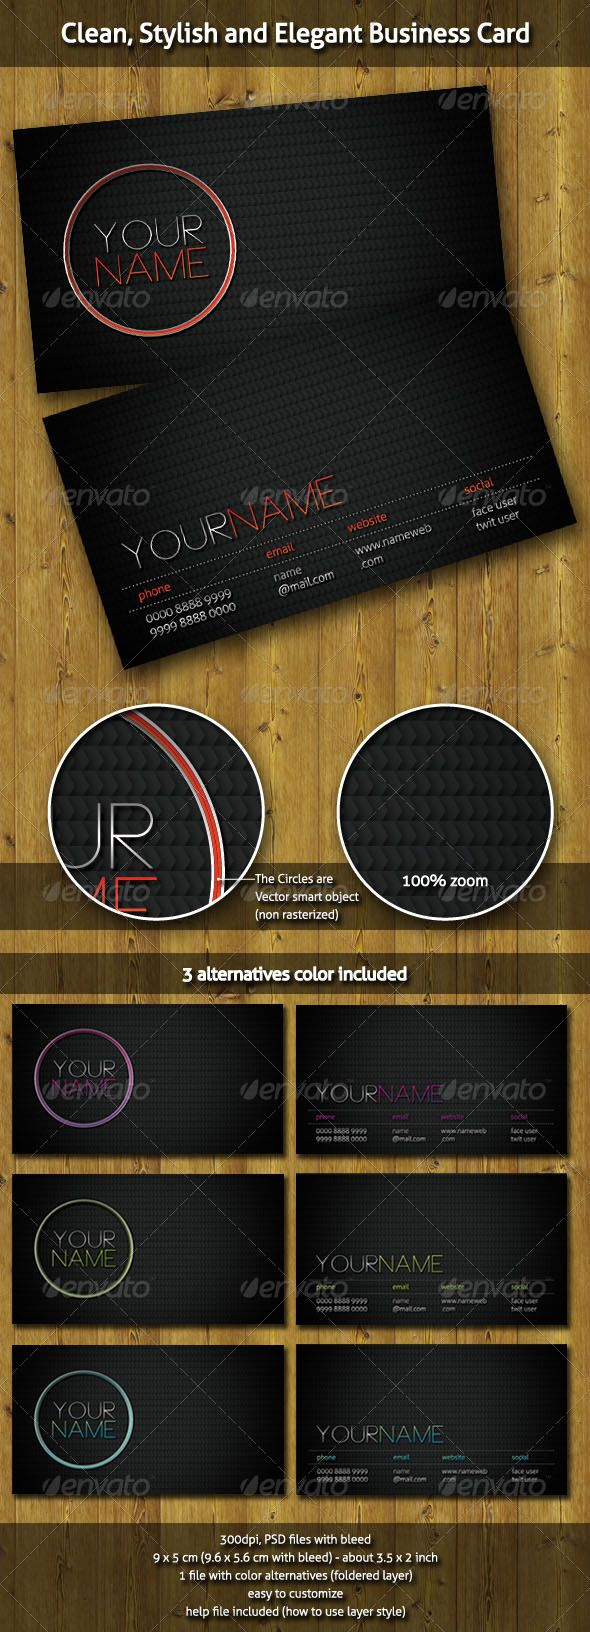 99 best Print Templates images on Pinterest | Print templates ...